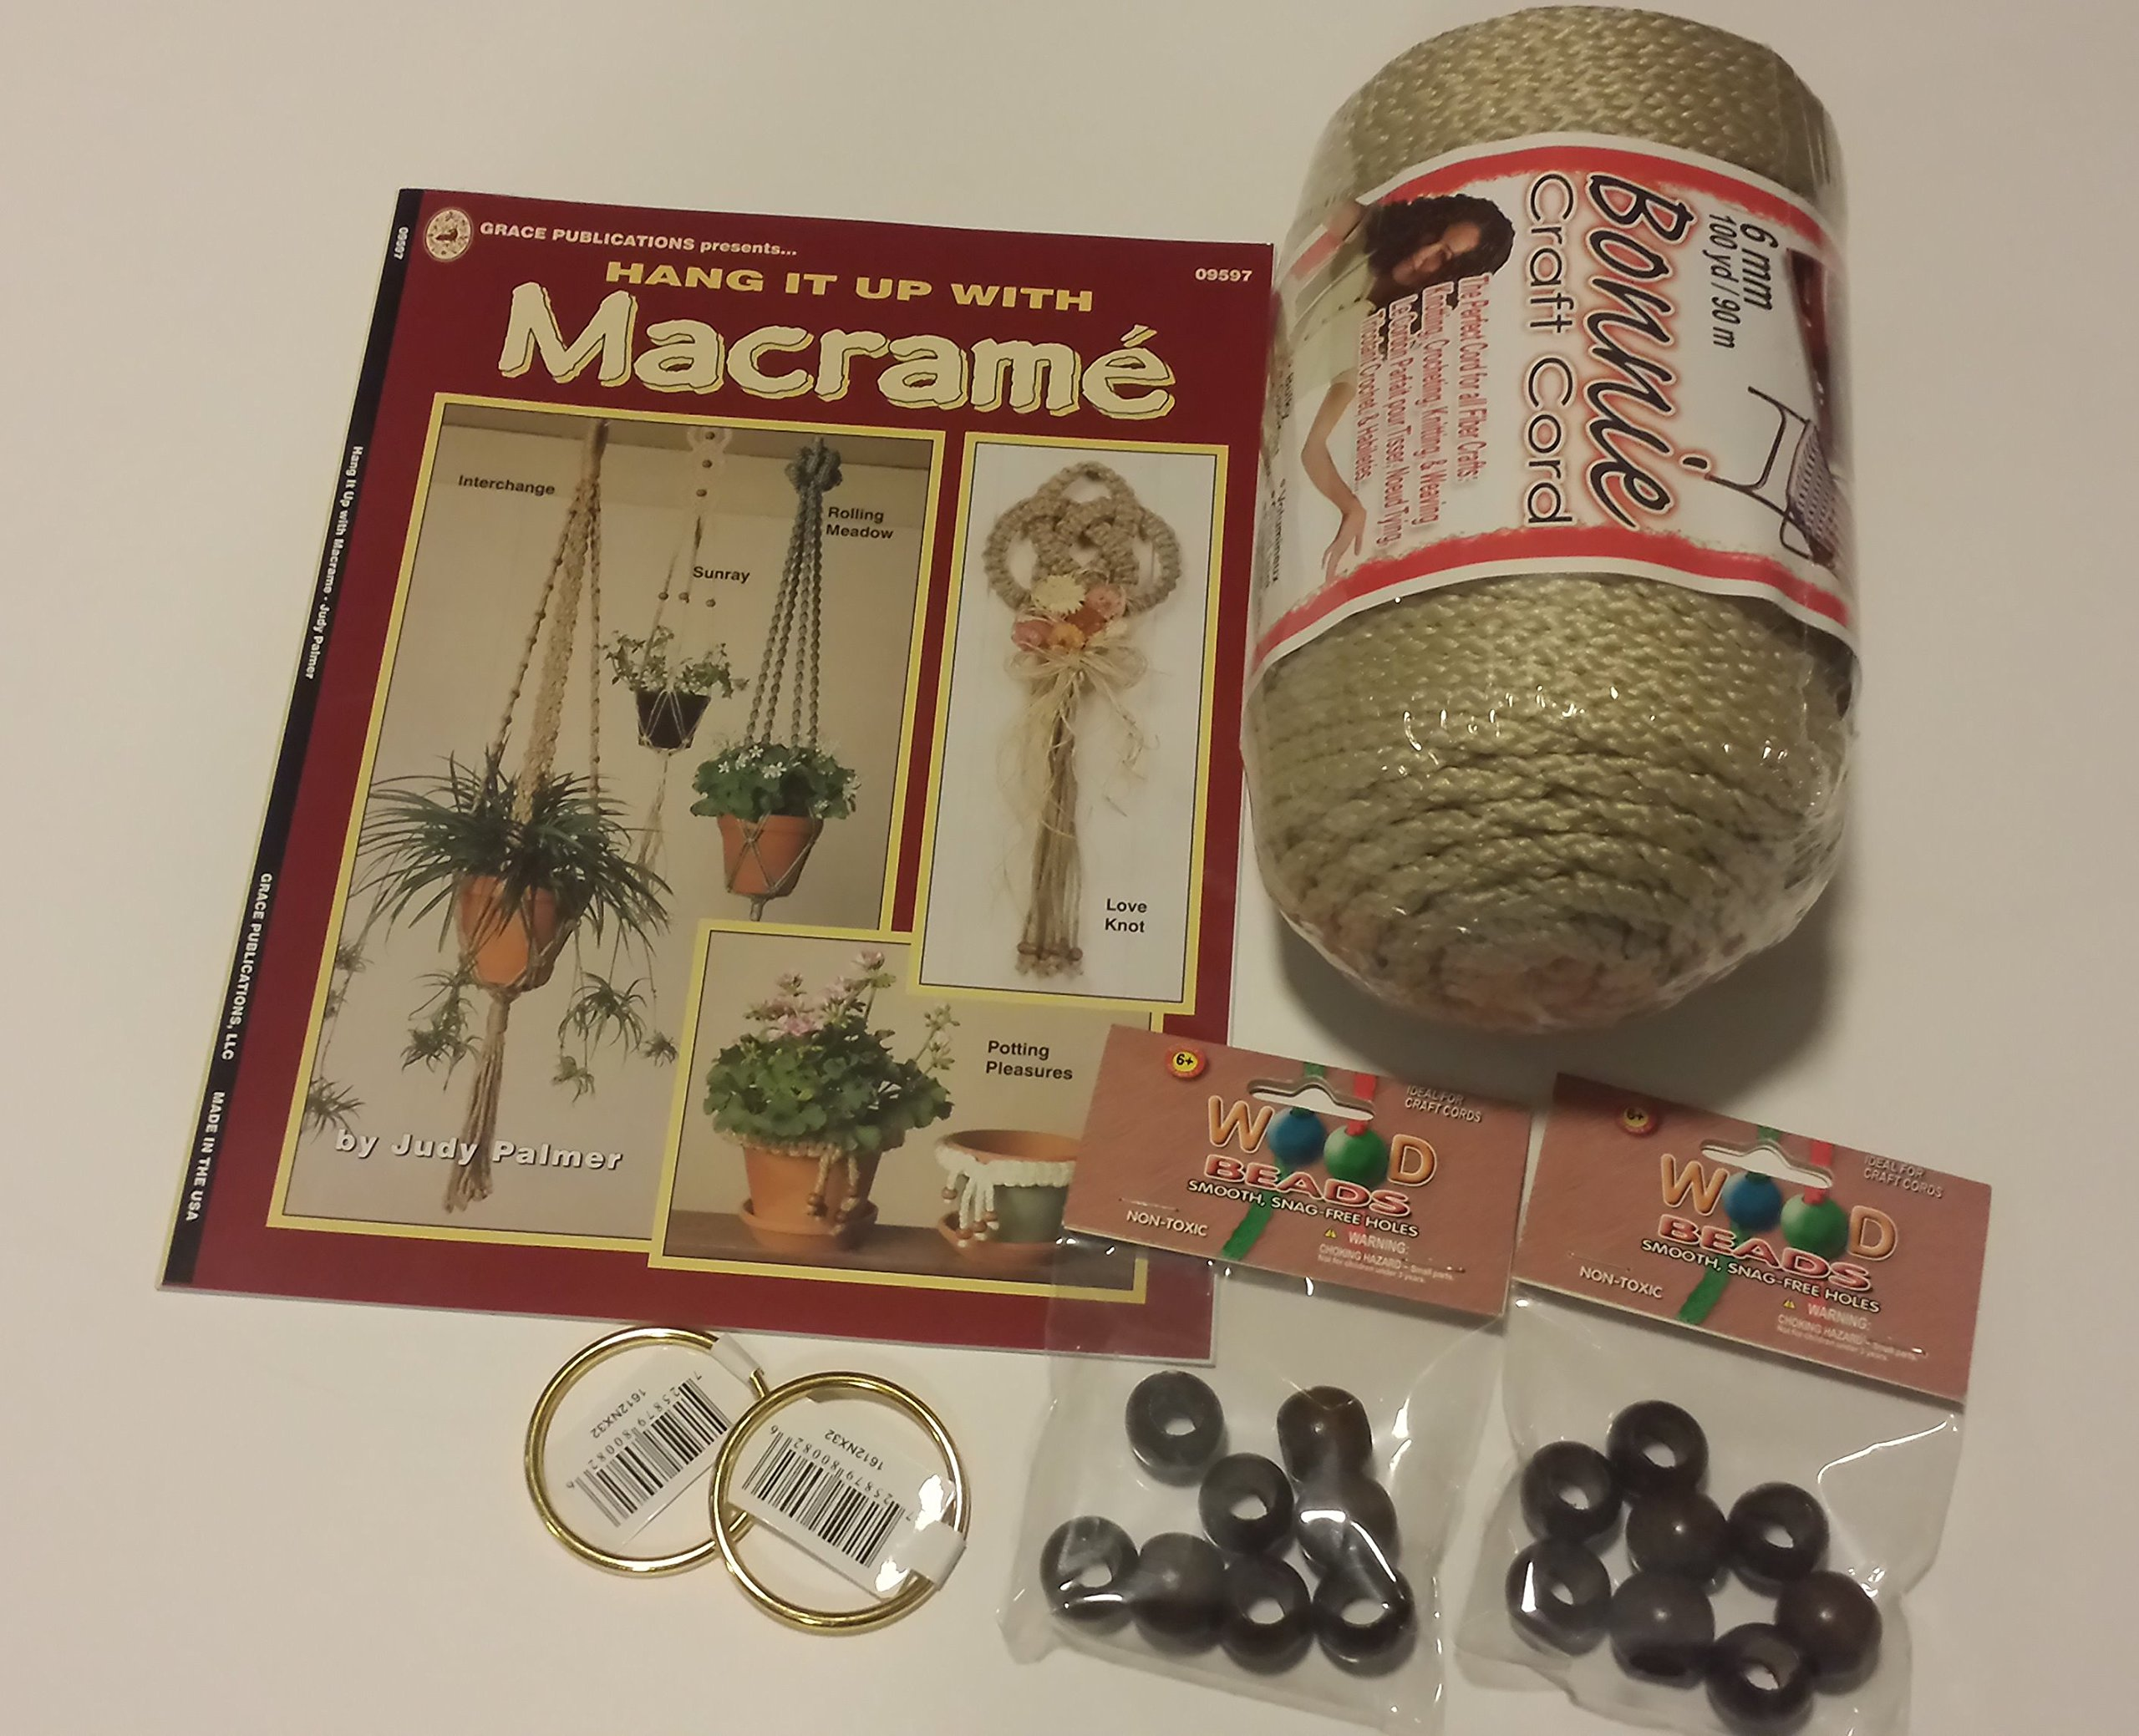 Macrame kit bundle with Craft Cord, Wooden Beads, Rings, and Project Book for plant hangers and wall hangings (pearl)